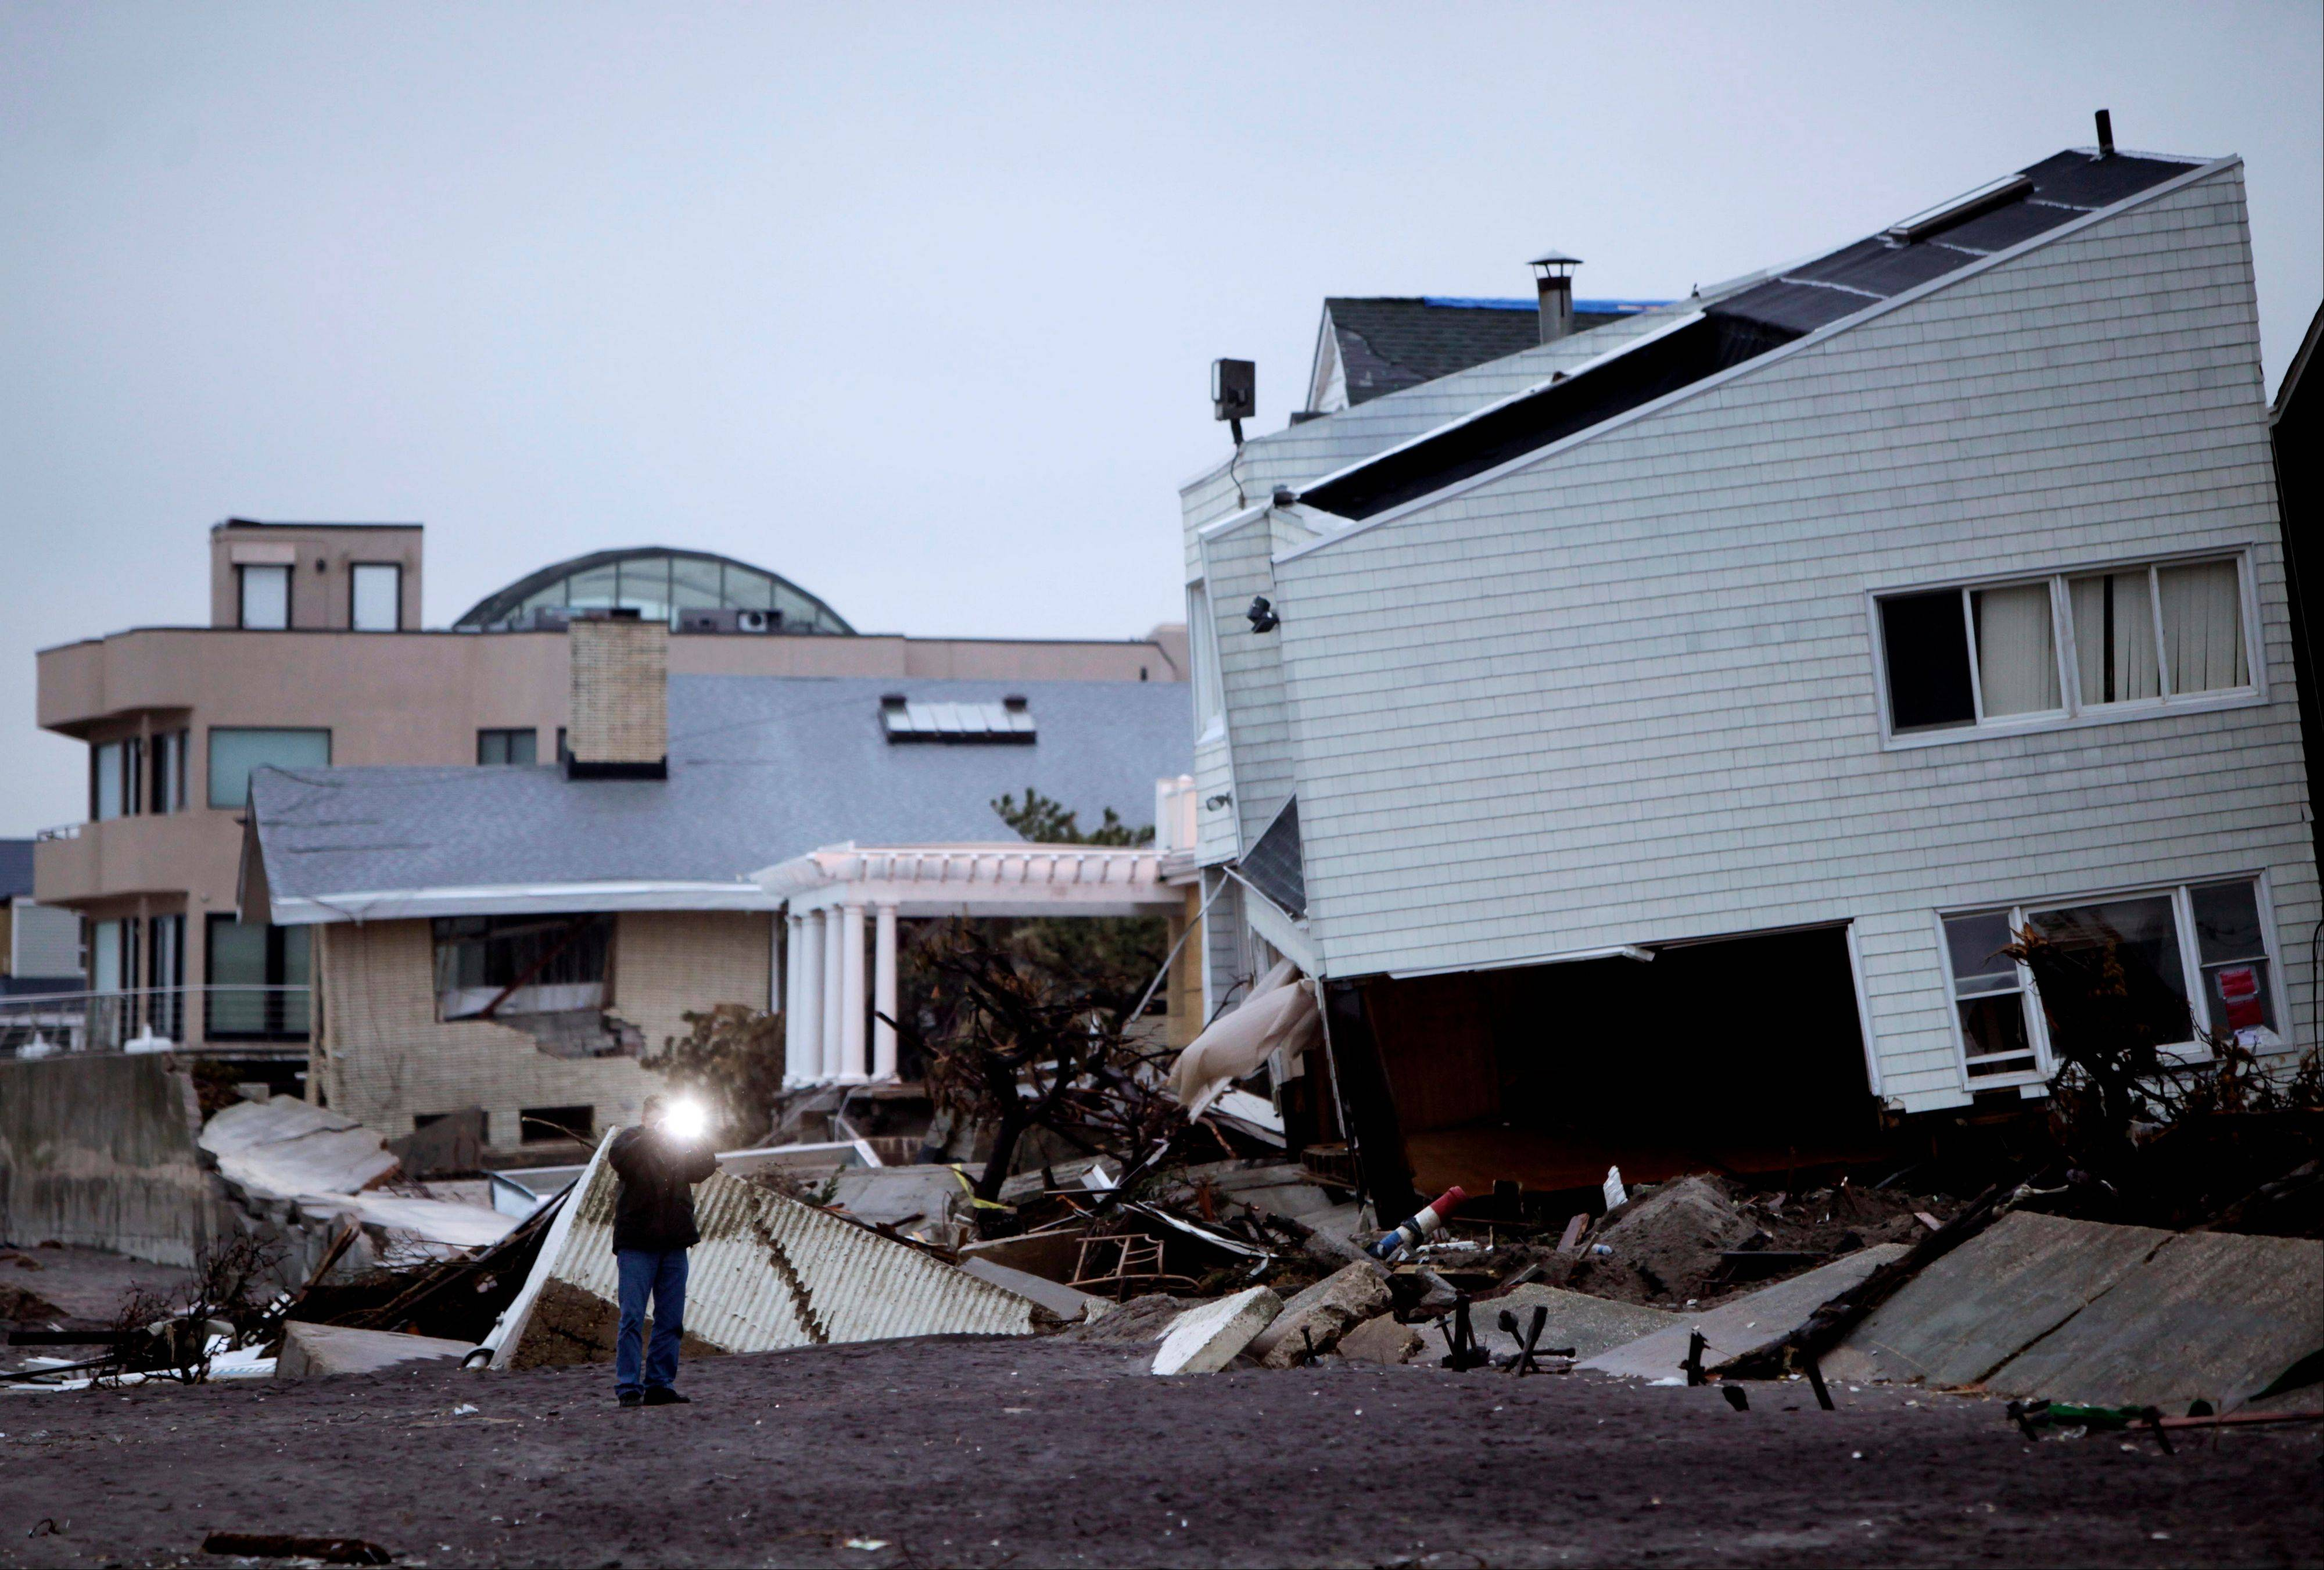 A man takes a picture of destroyed homes on the Rockaway Peninsula in Queens, New York, Tuesday.